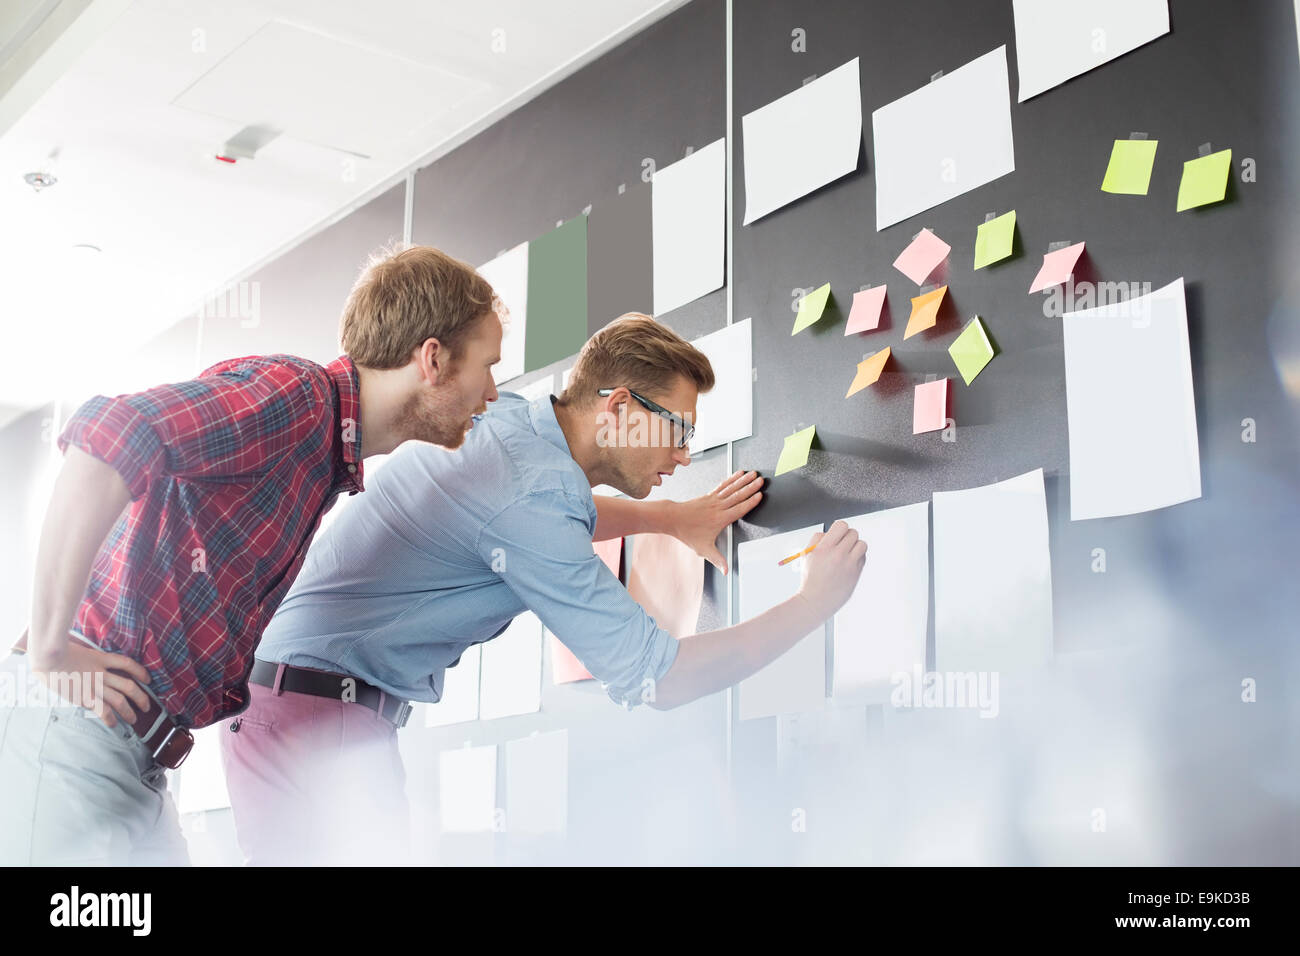 Businessmen analyzing documents on wall in office - Stock Image